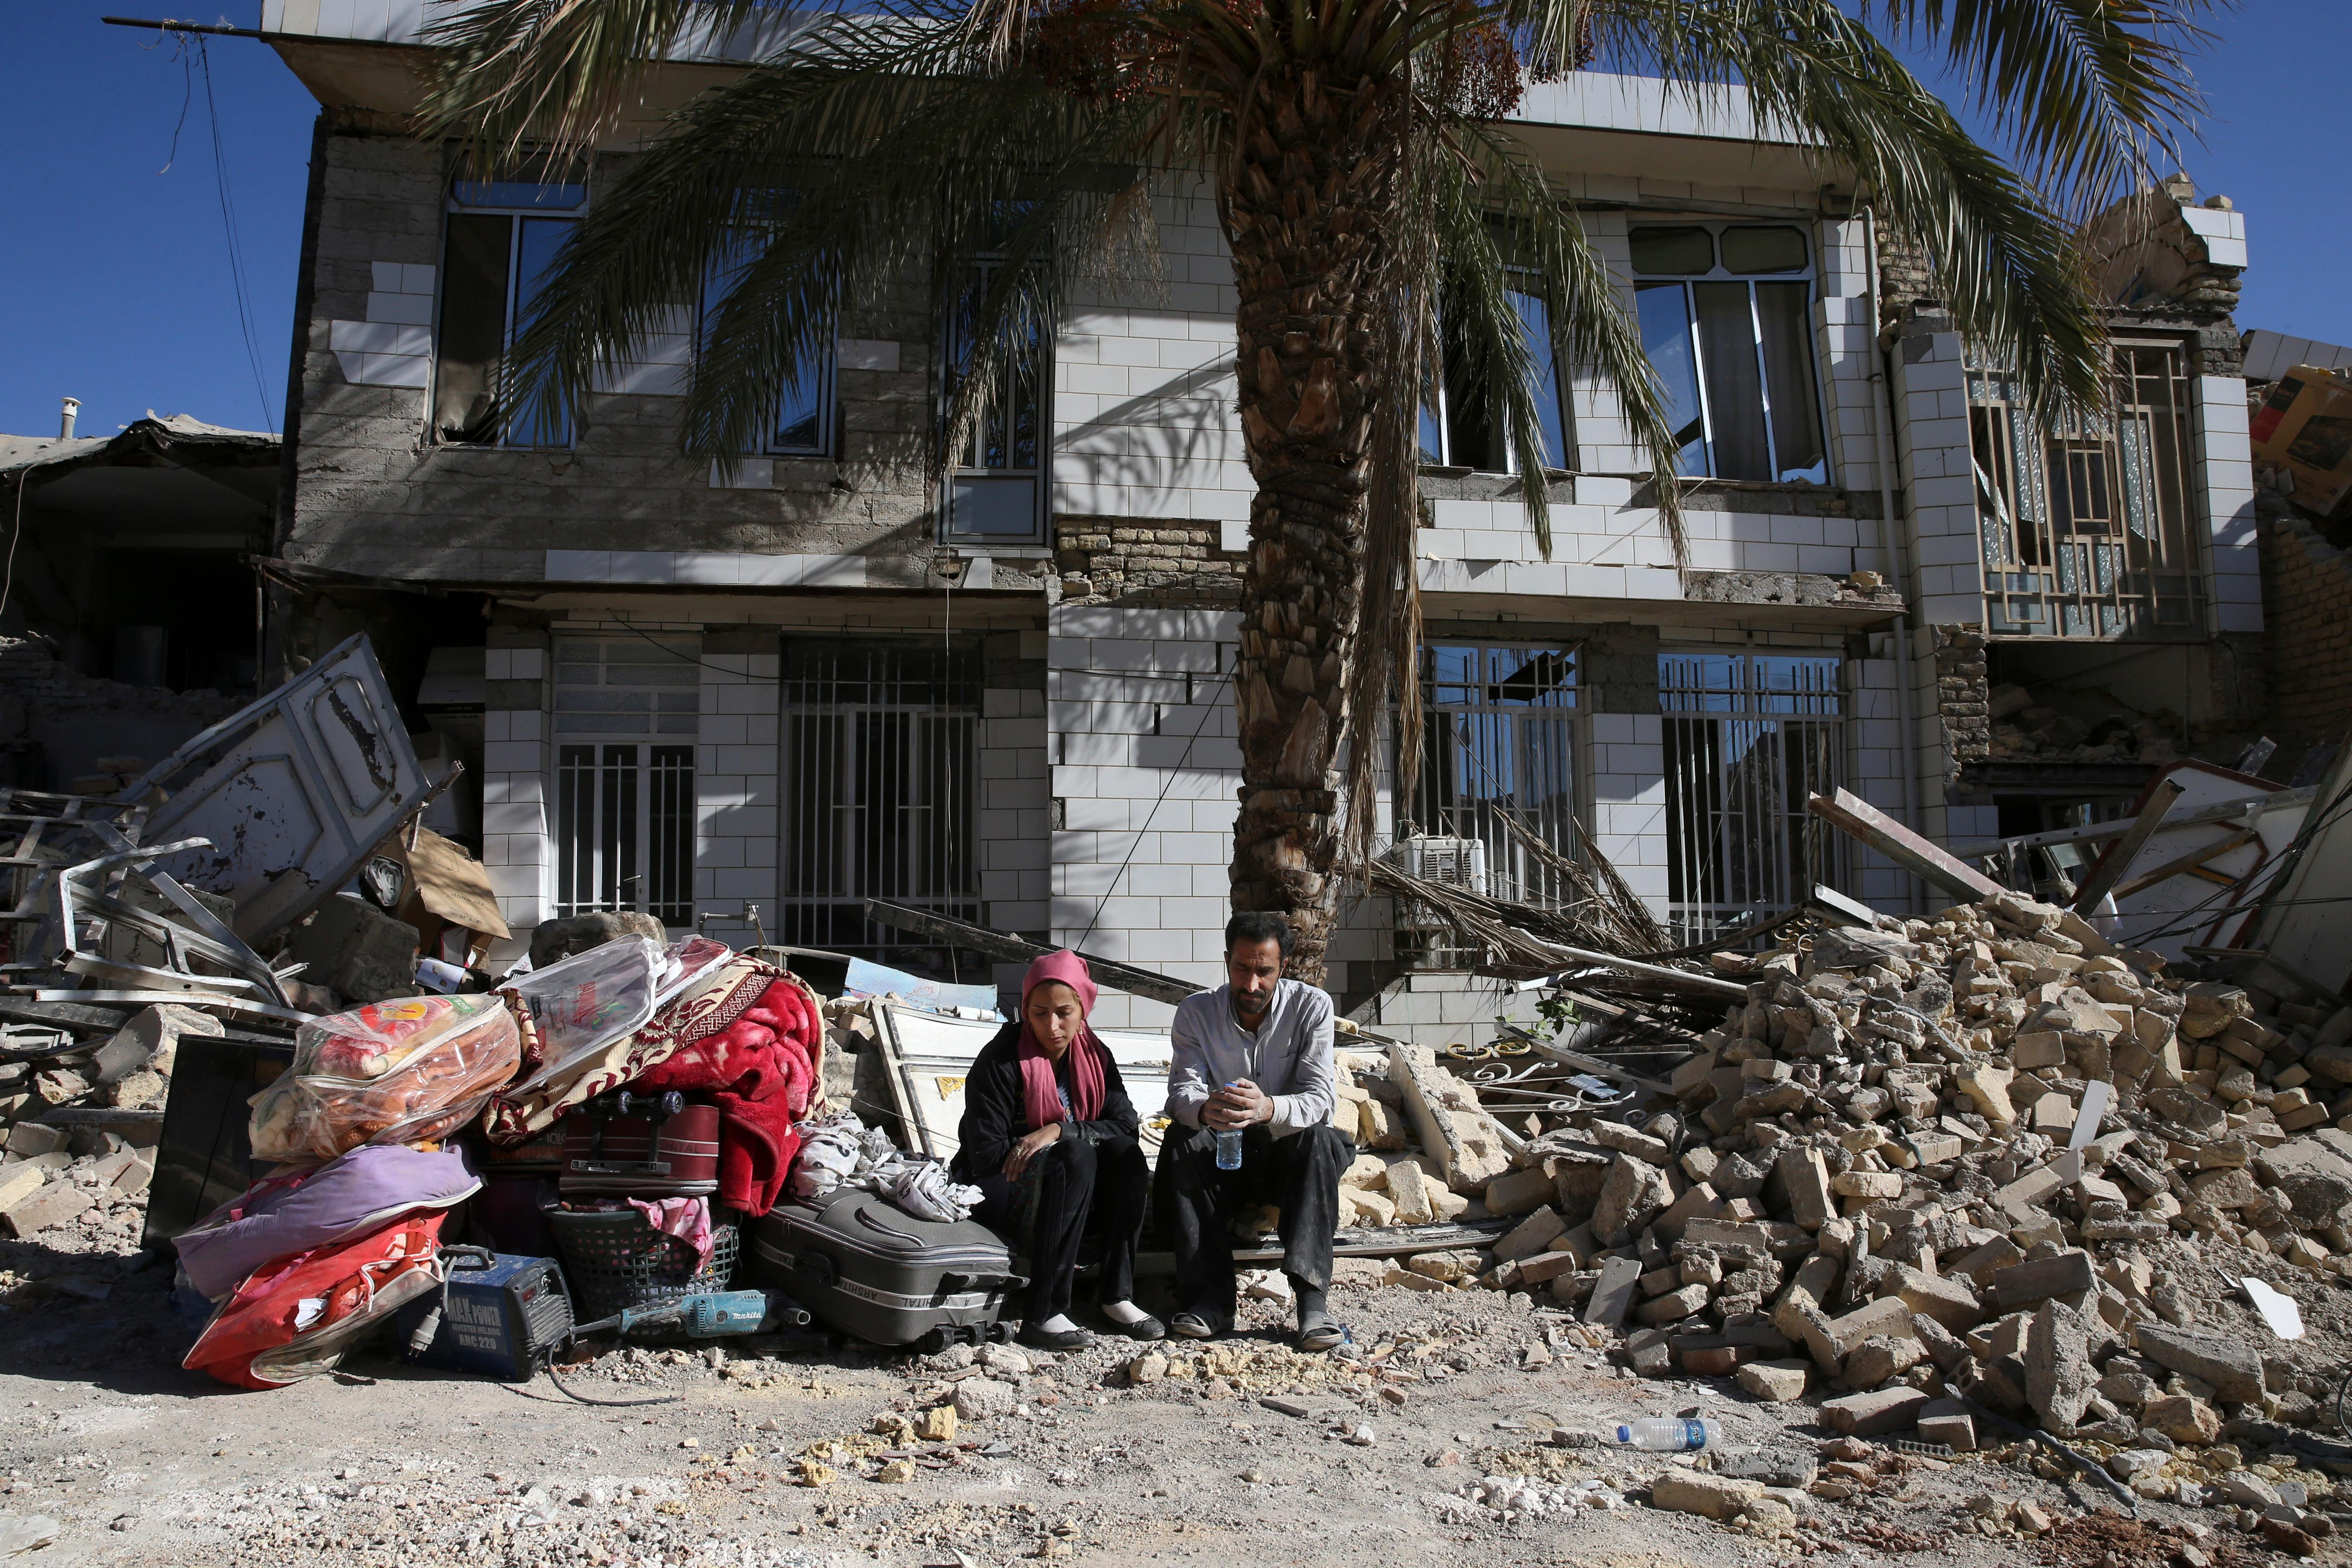 Survivors sit in front of a destroyed house on the earthquake site in Sarpol-e-Zahab in western Iran, Tuesday, Nov. 14, 2017. Rescuers are digging through the debris of buildings felled by the Sunday earthquake in the border region of Iran and Iraq. (AP Photo/Vahid Salemi)